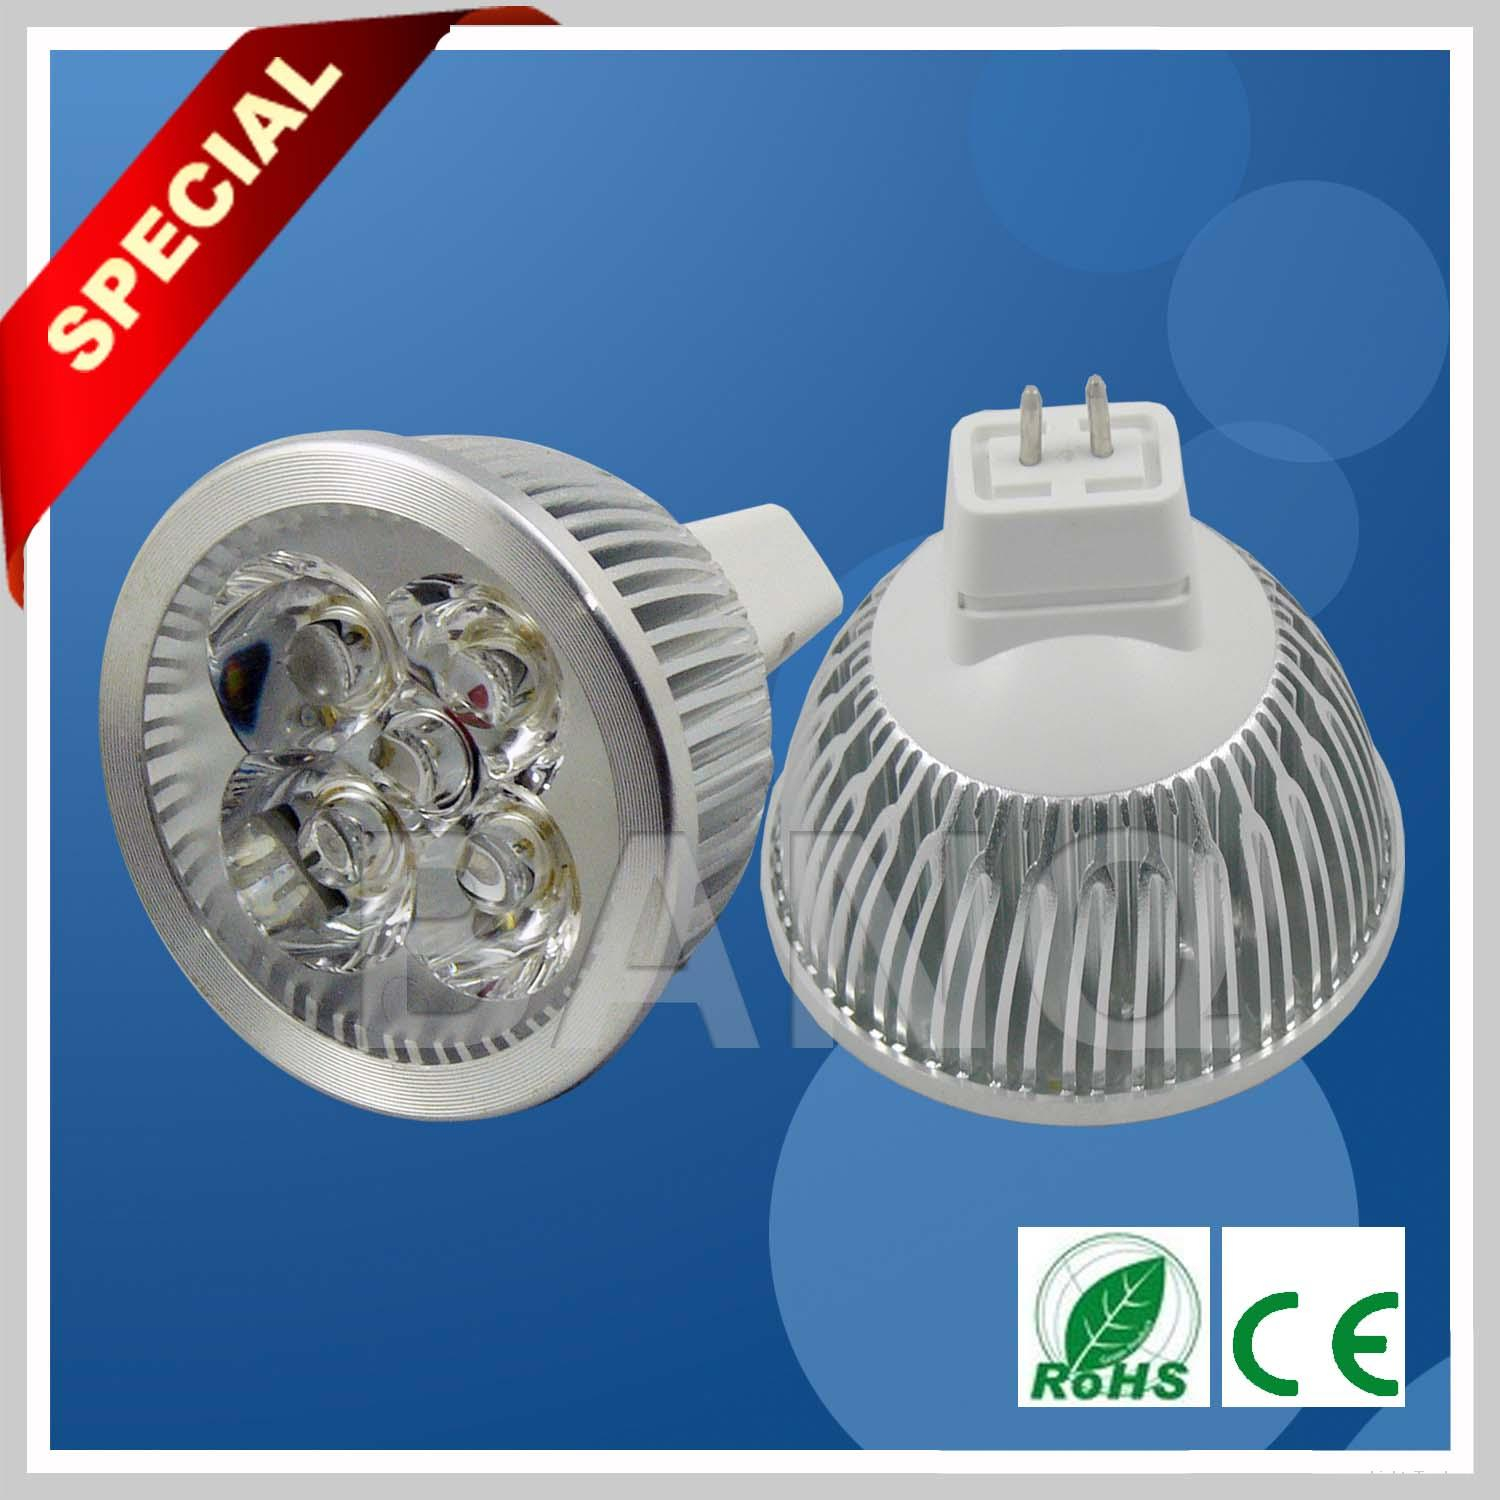 4W MR16 LED light